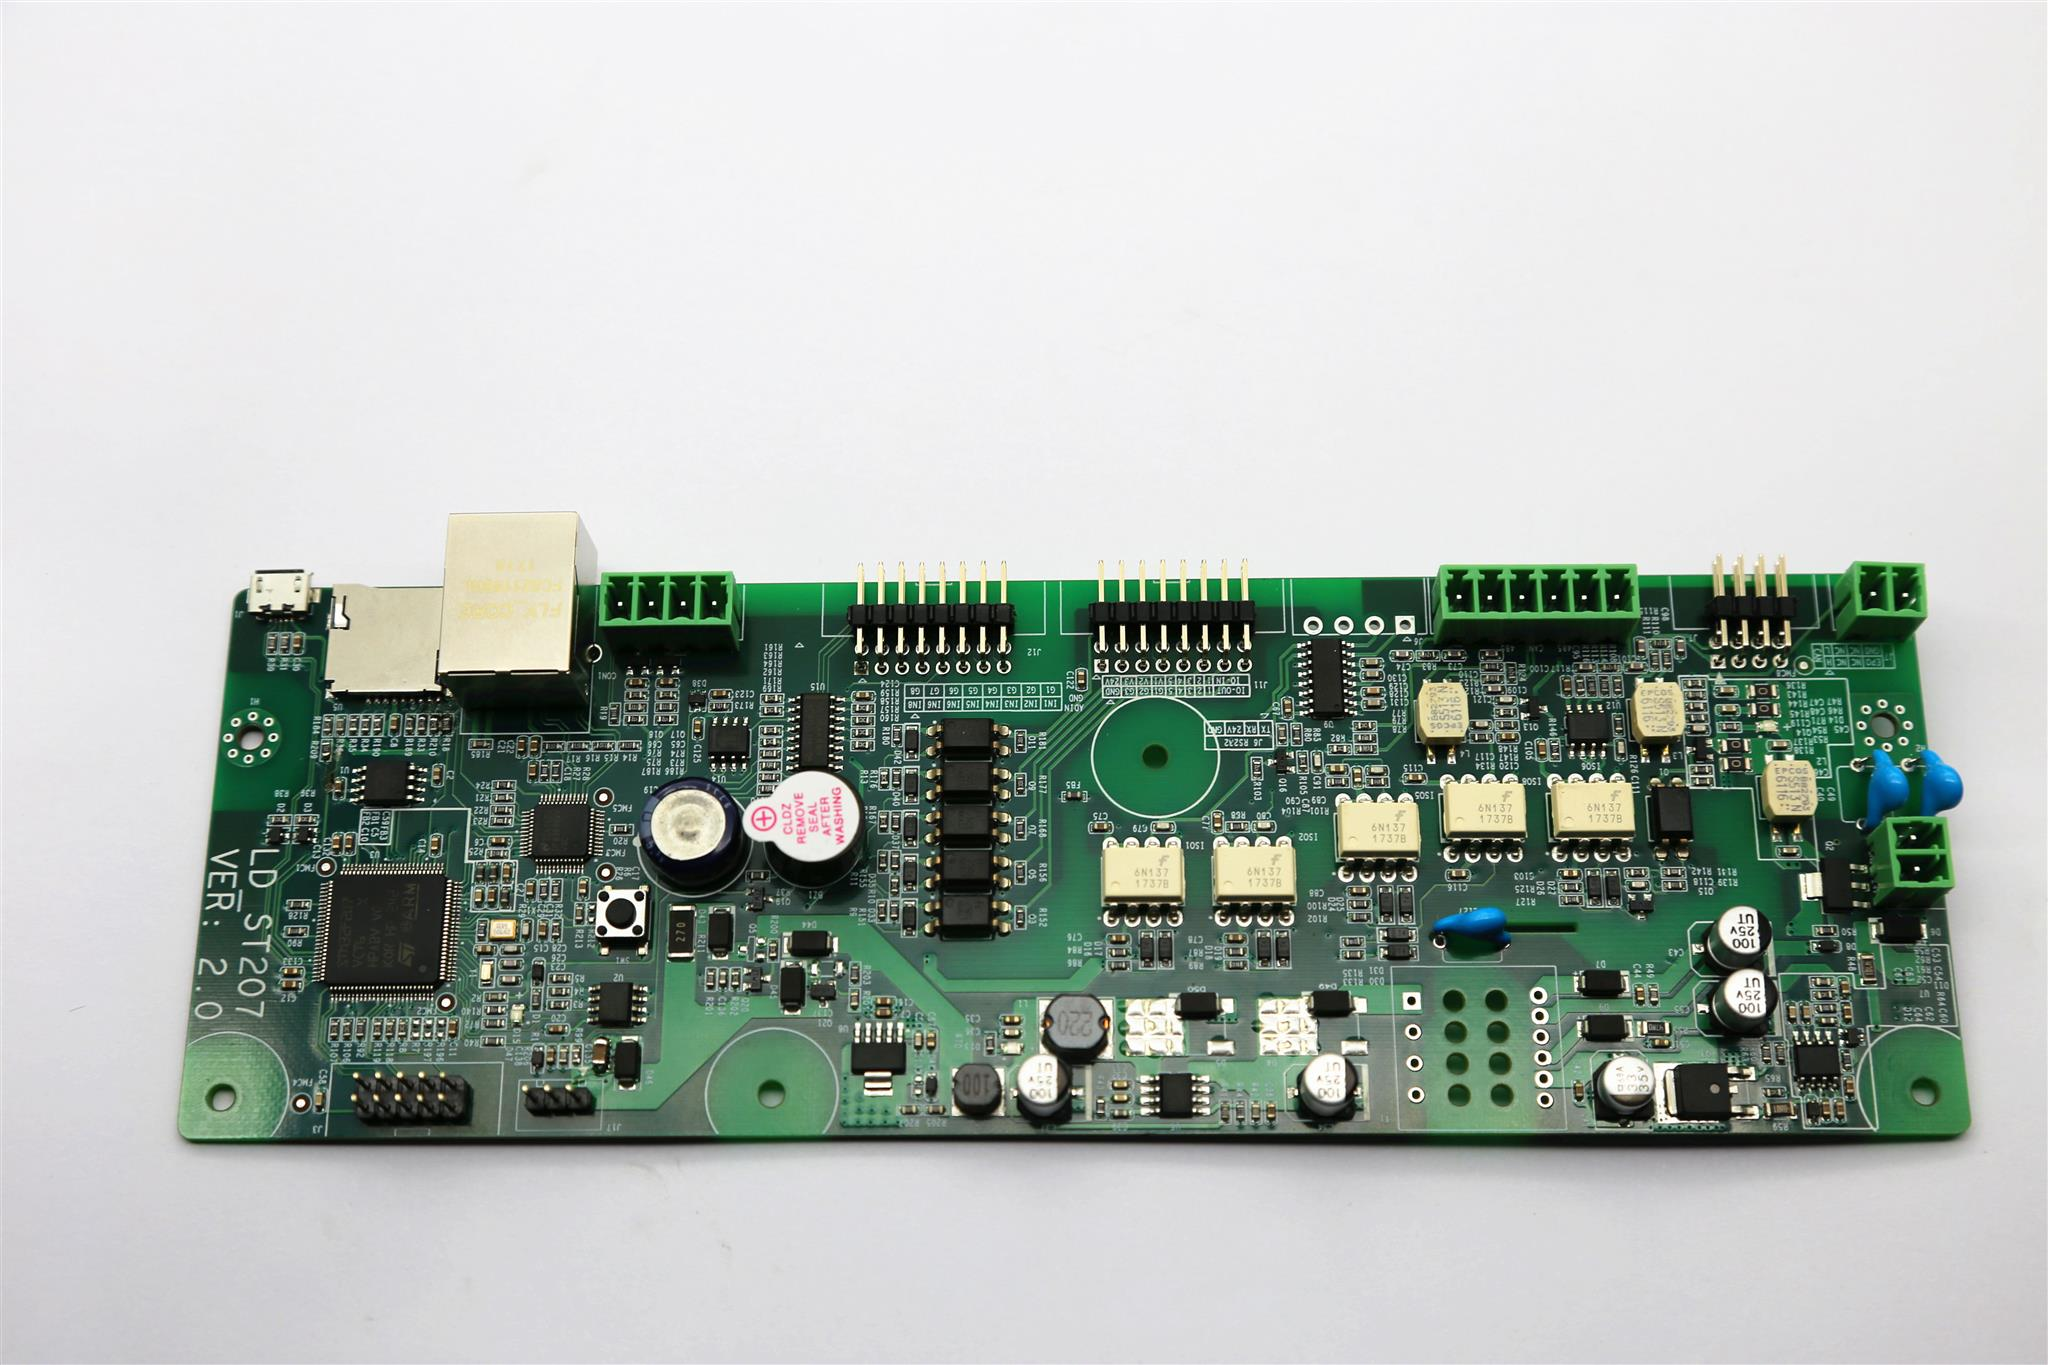 PCBGOGO, a professional PCB prototype and assembly